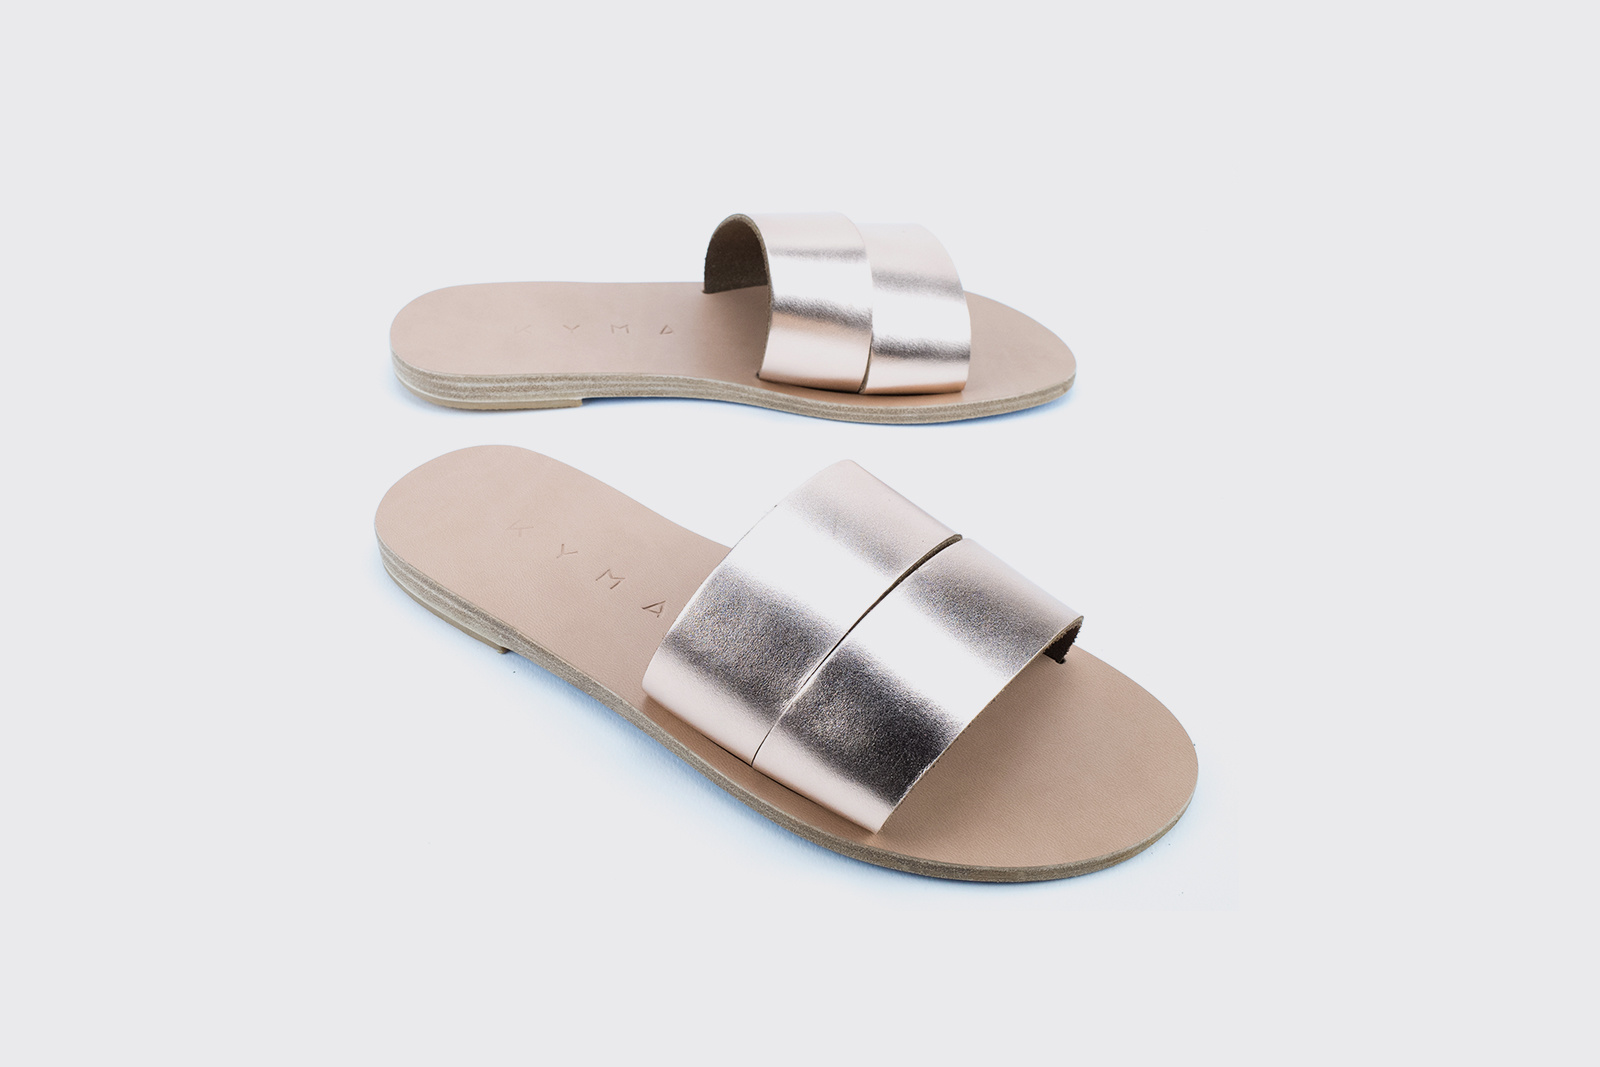 Kyma Kithira Greek Sandals in Bronze/Natural